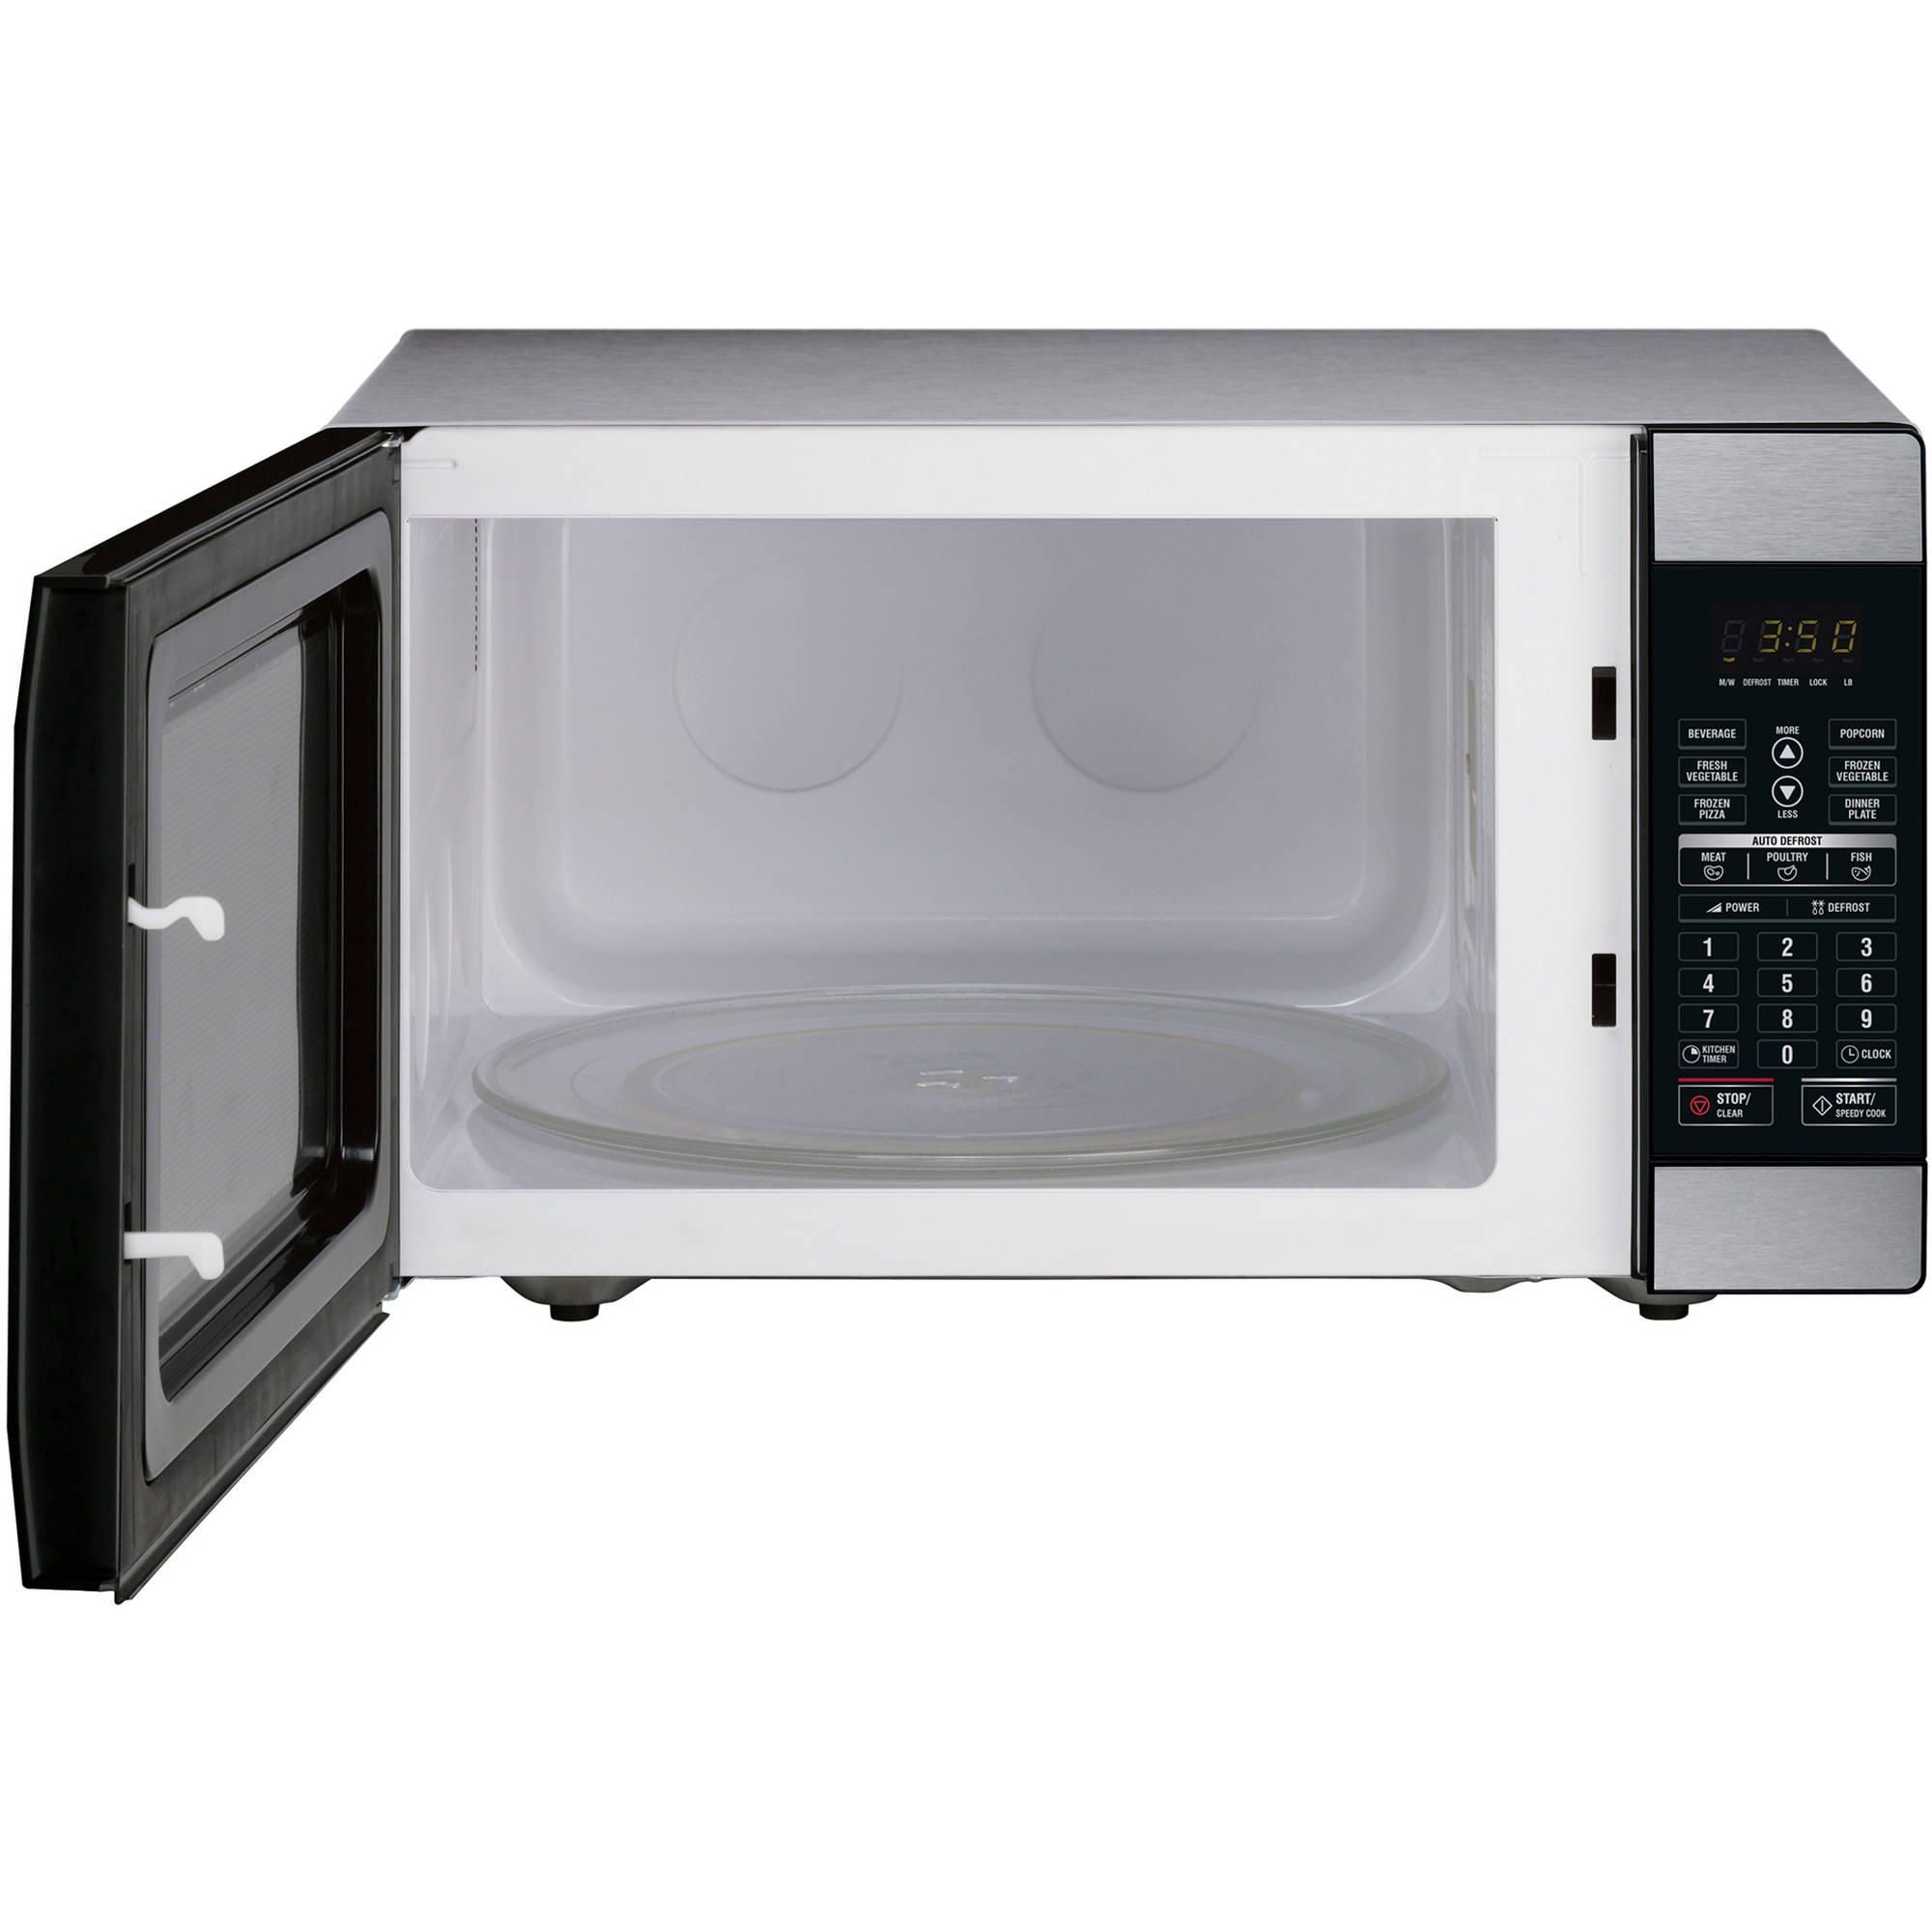 Oster 0.7 Cu Ft Countertop Microwave Microwaves At Kohls Bestmicrowave